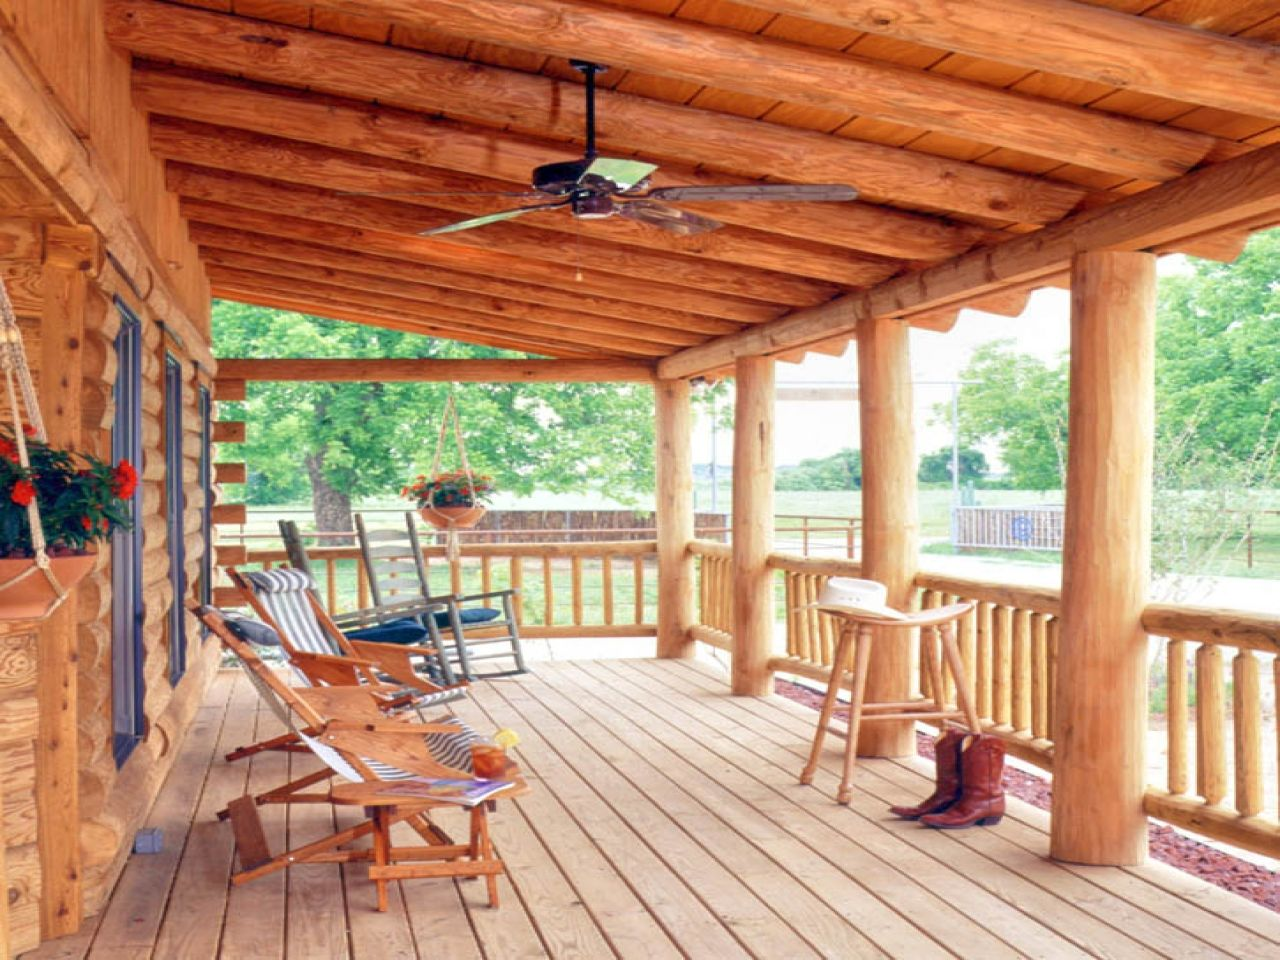 Log porch railing kits log cabin deck railing cabin decks for Log home decks